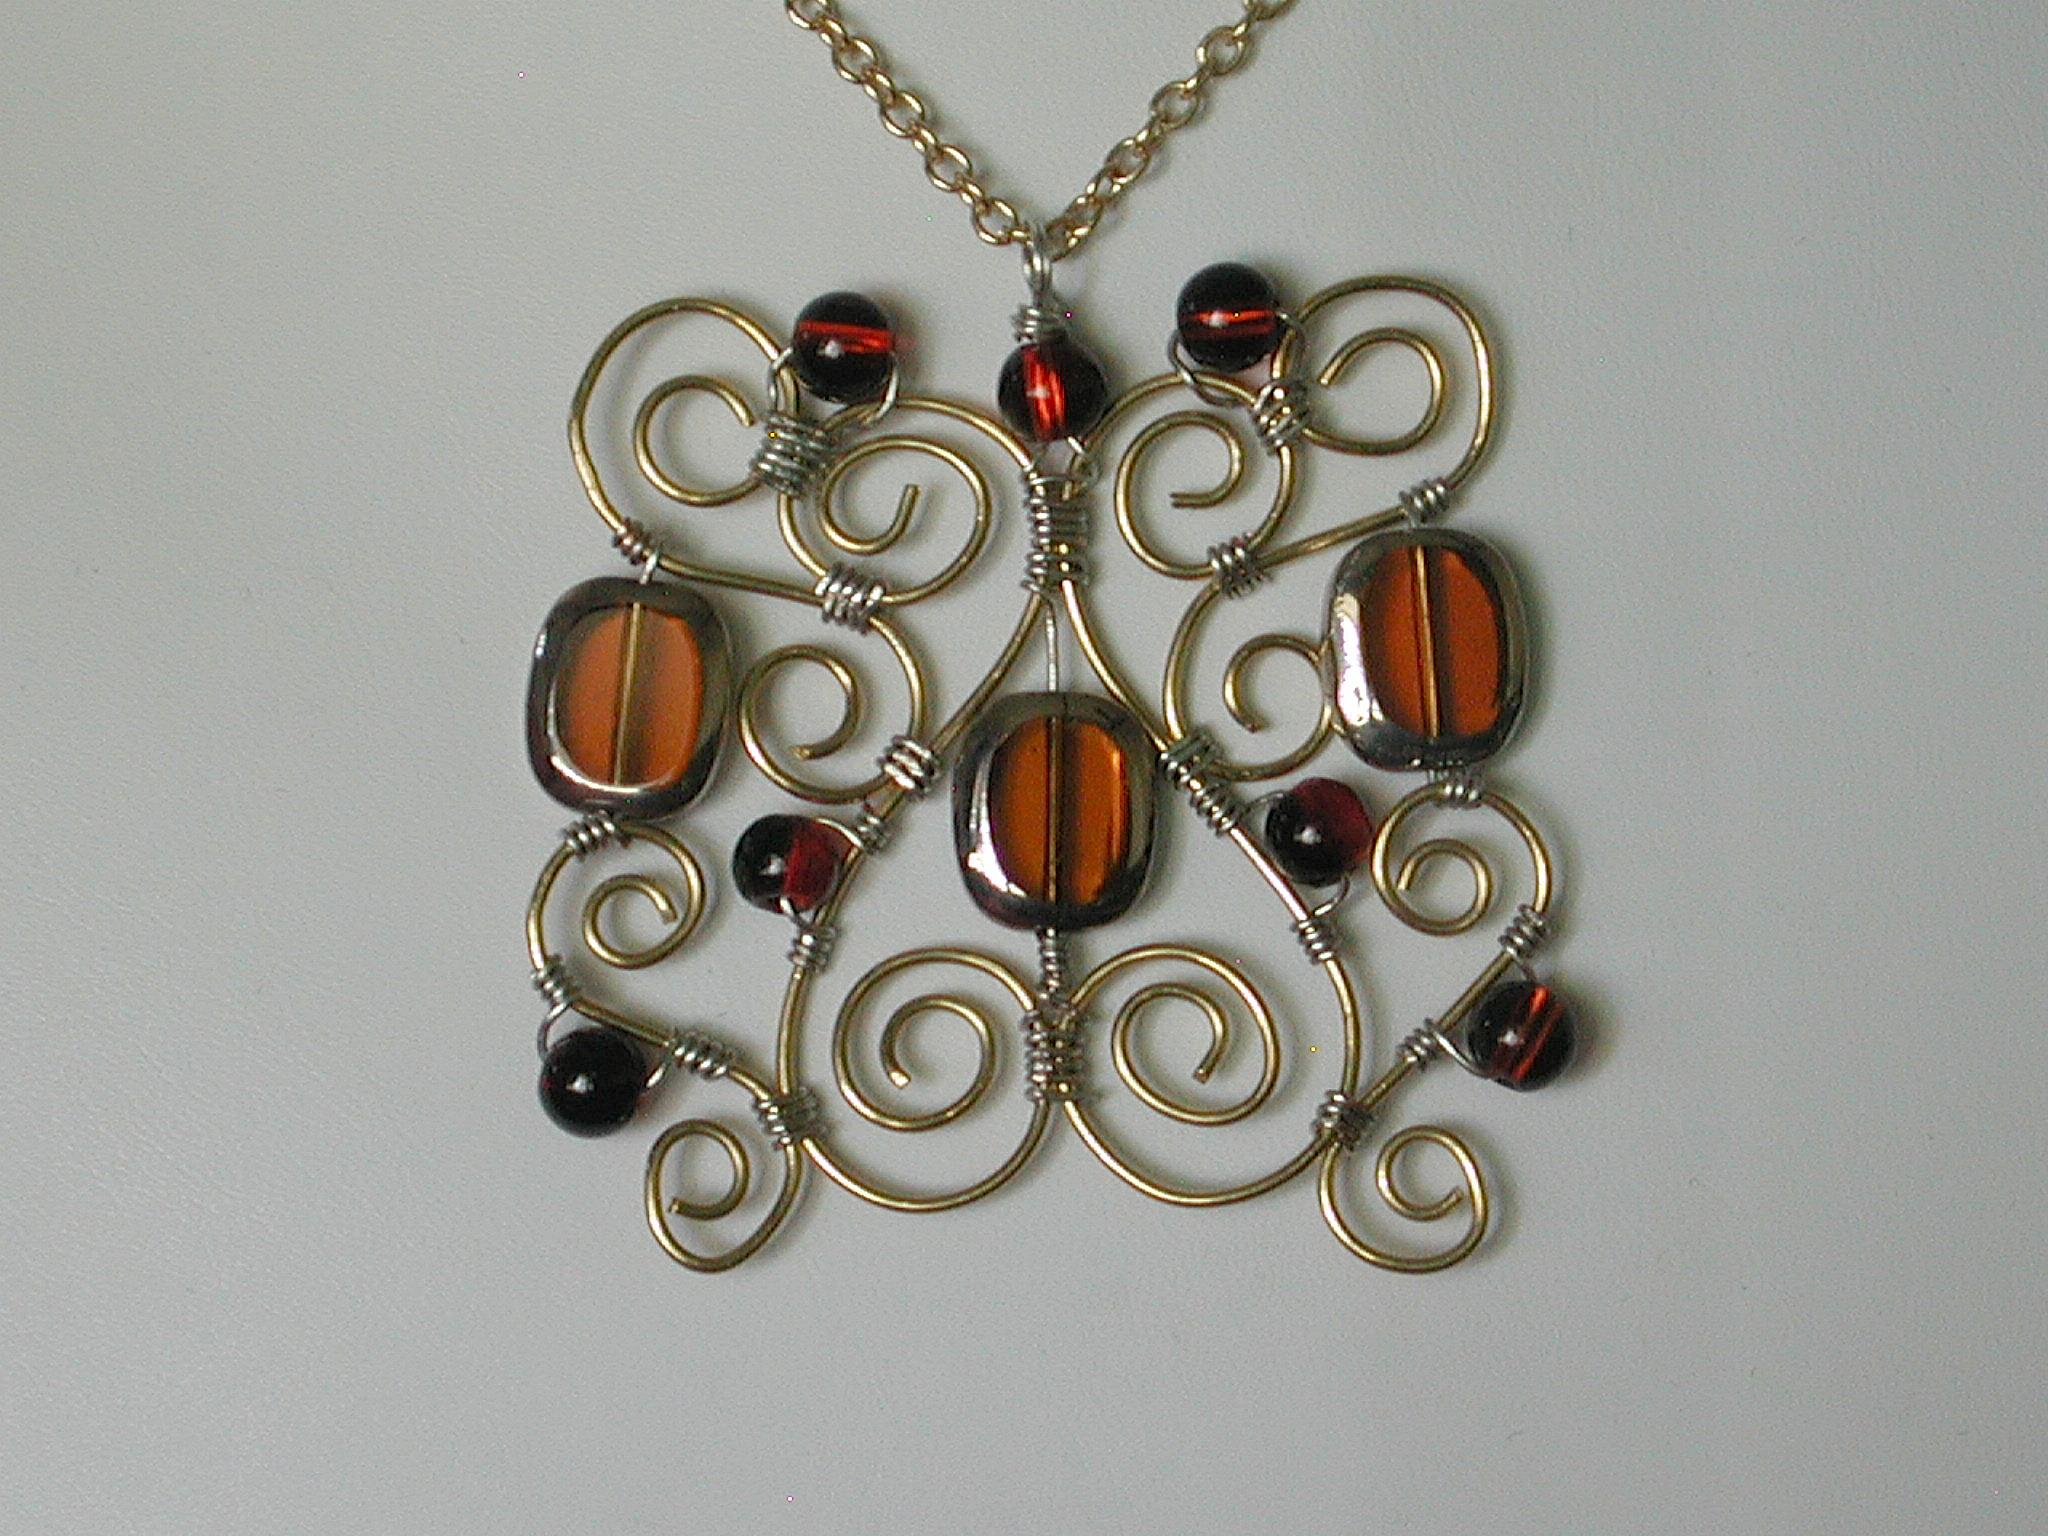 Crocheted Wire Jewelry | Designs By Dawn Marie - Bead Embroidered